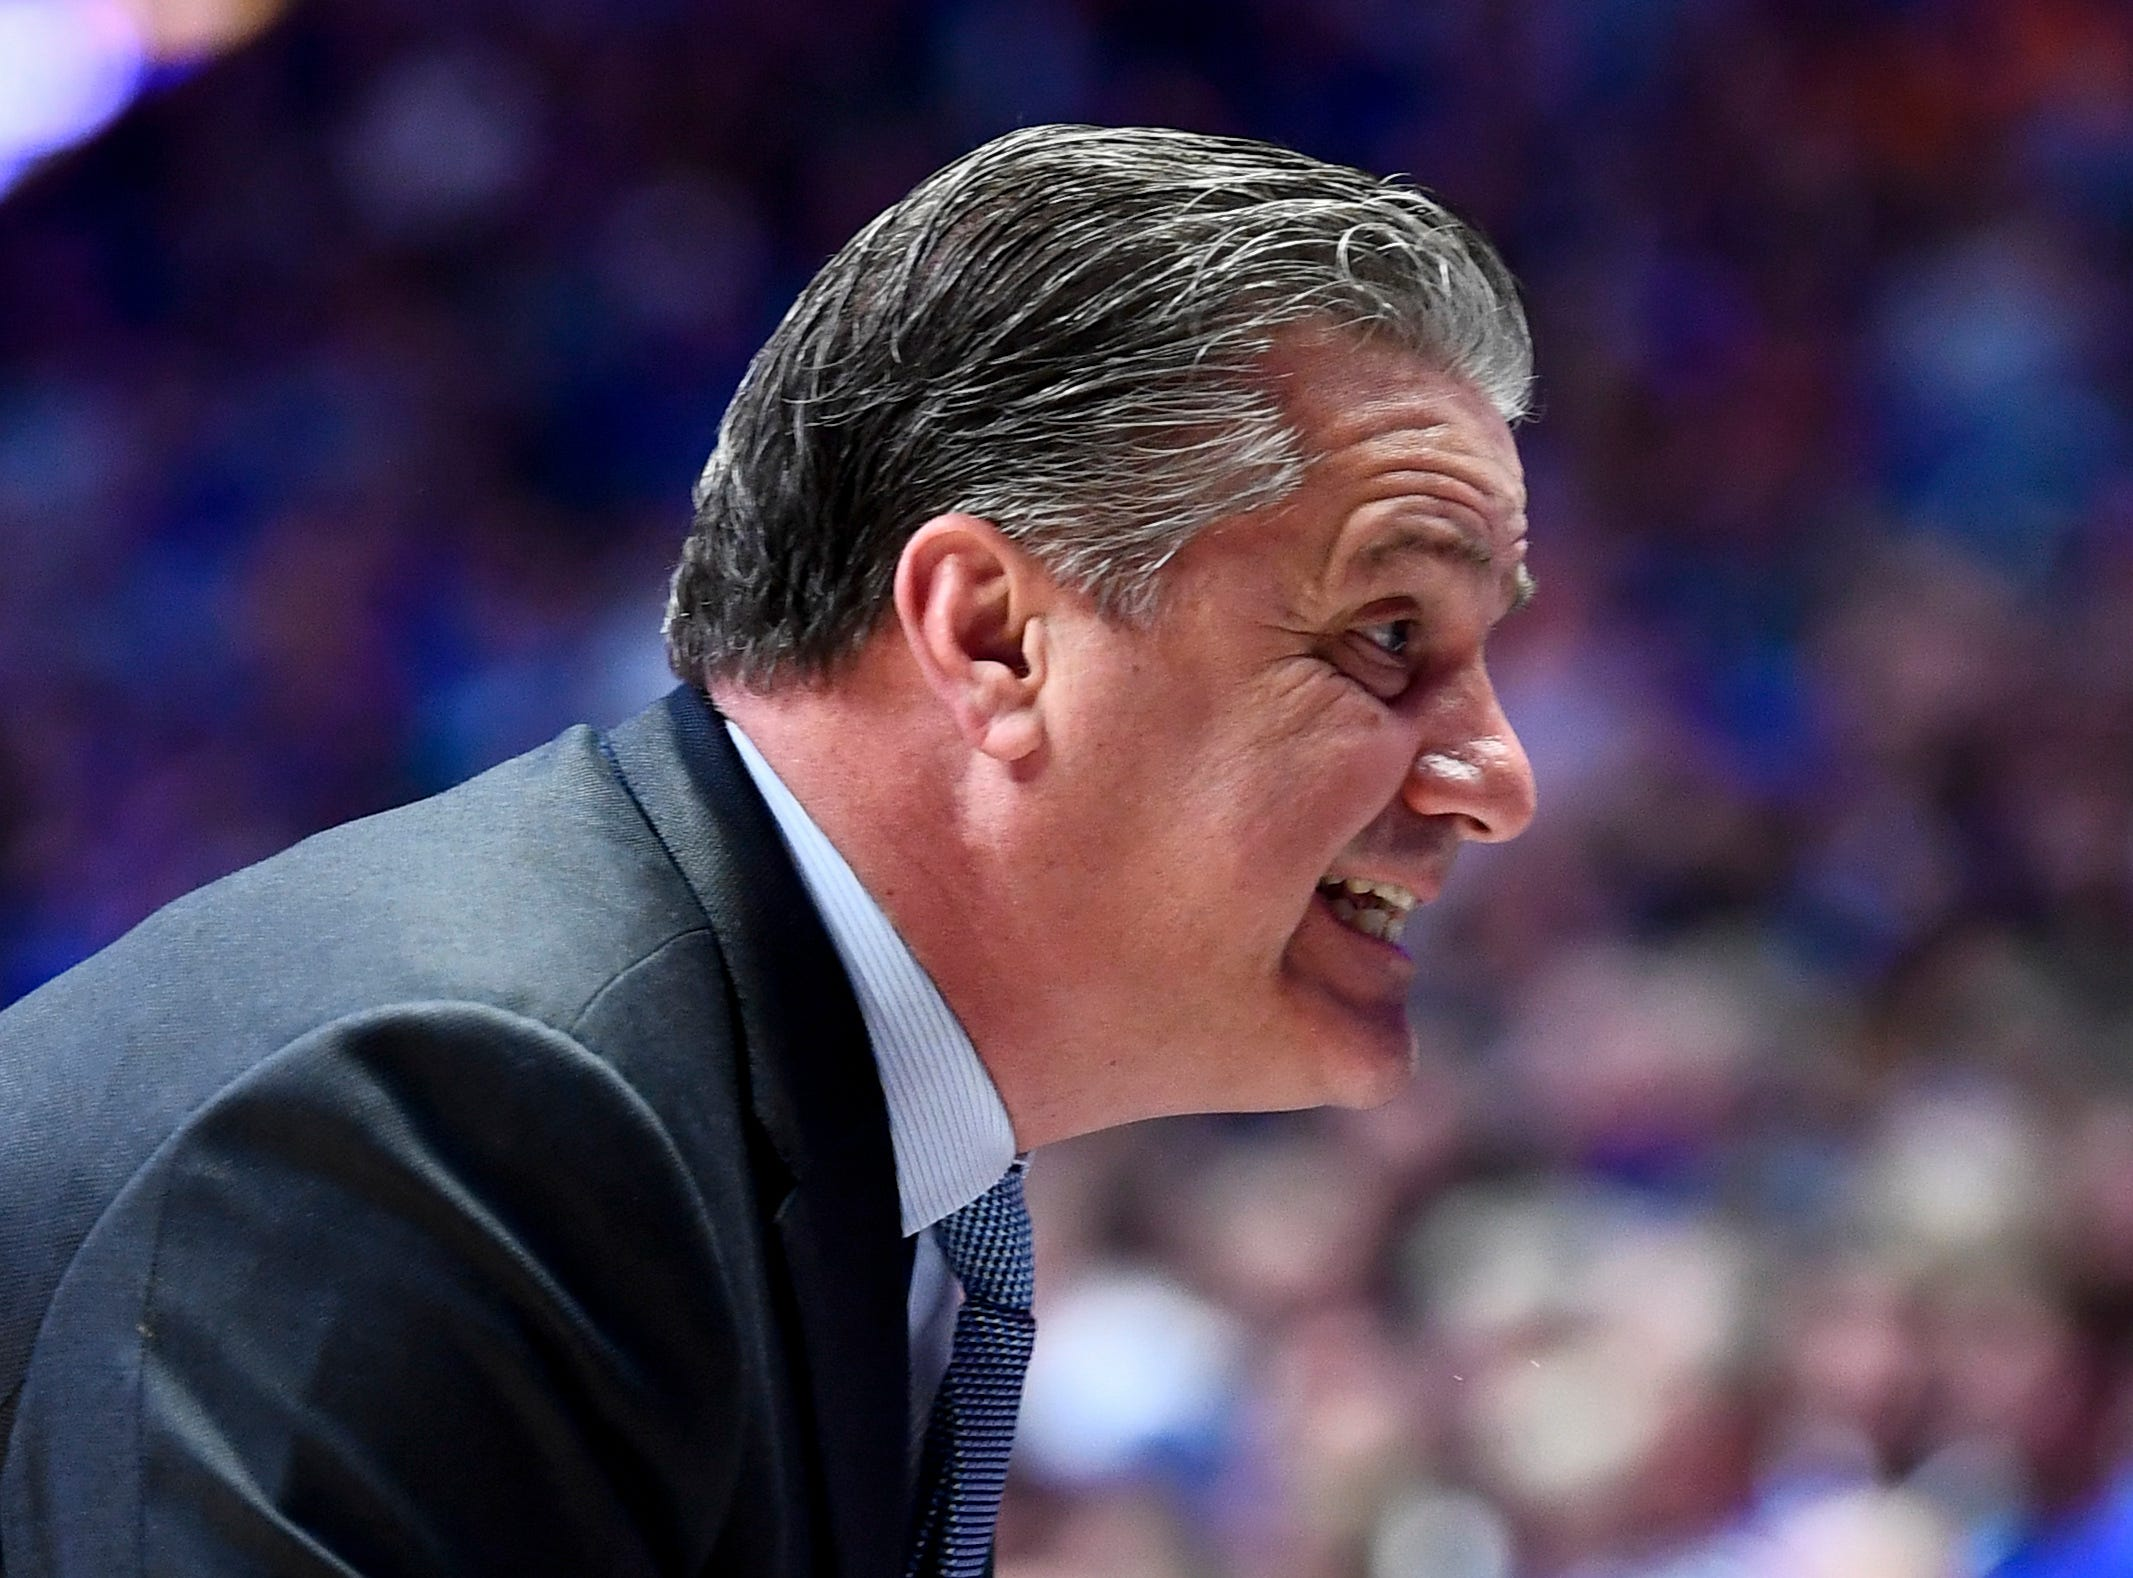 Kentucky head coach John Calipari works with his team against Tennessee during the first half of the SEC Men's Basketball Tournament semifinal game at Bridgestone Arena in Nashville, Tenn., Saturday, March 16, 2019.